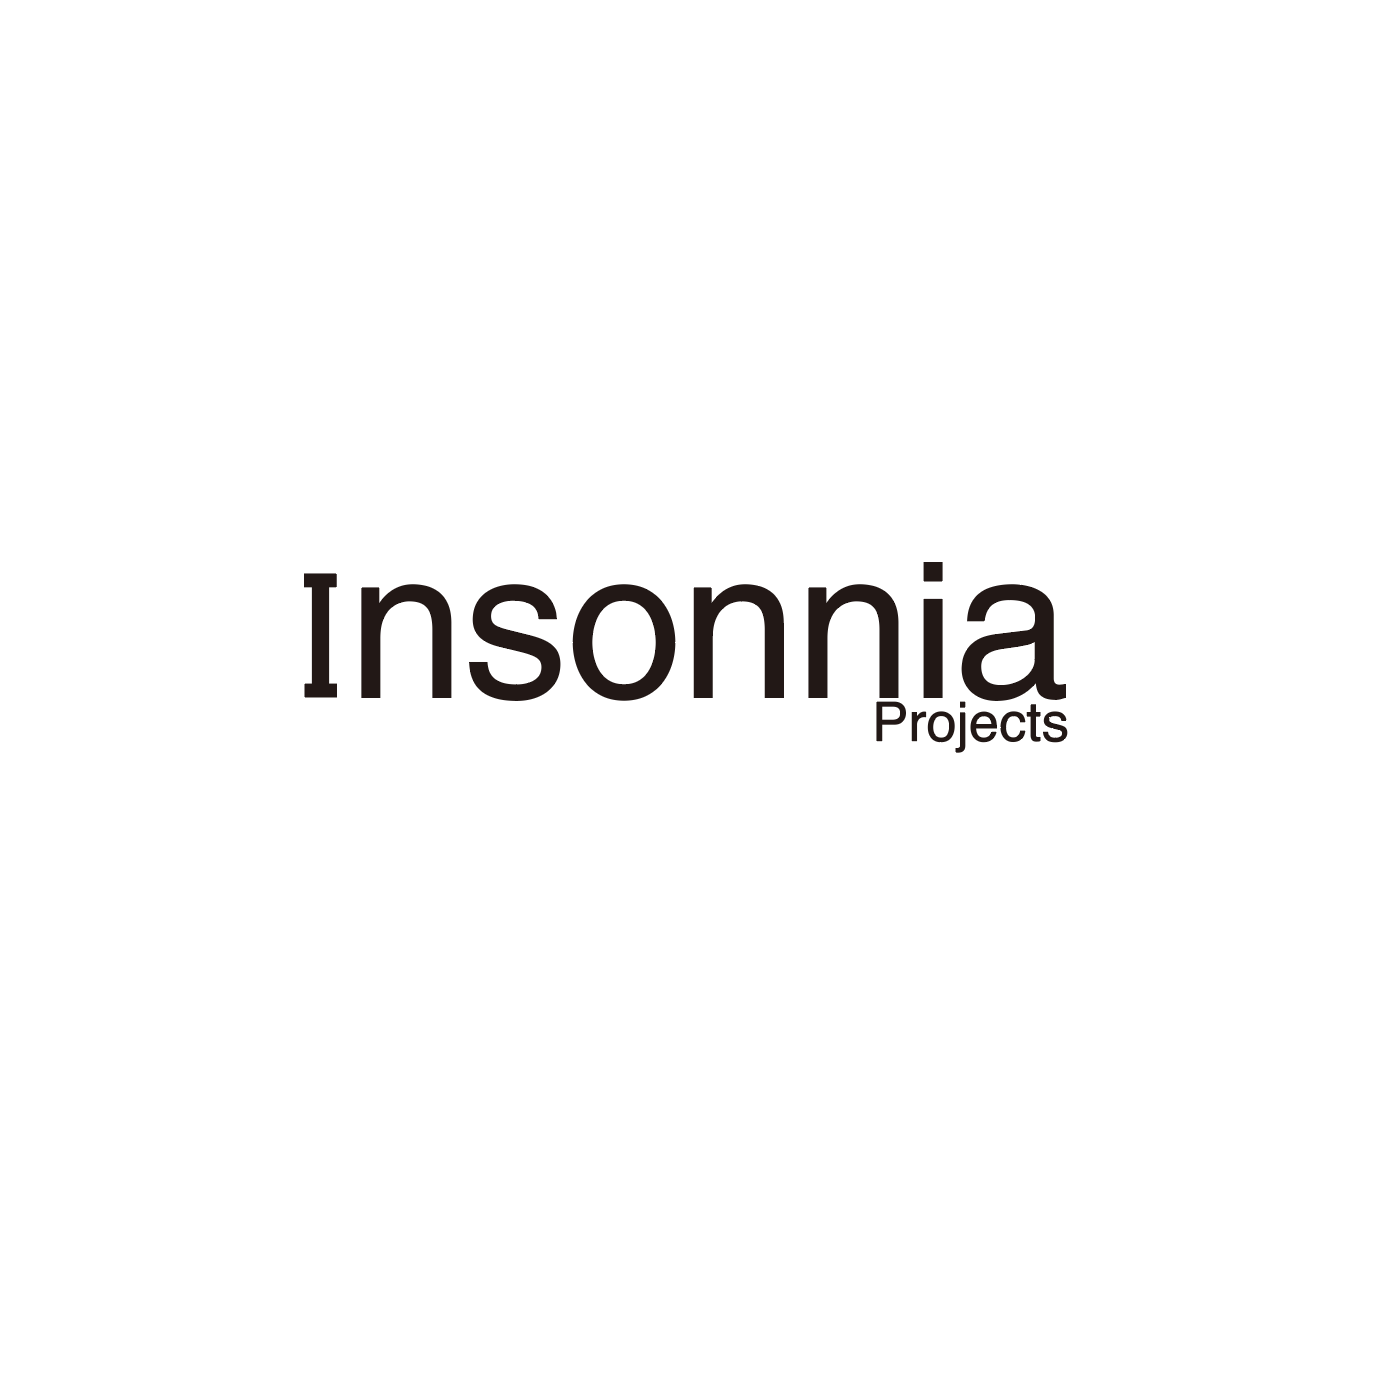 Insonnia knit wear